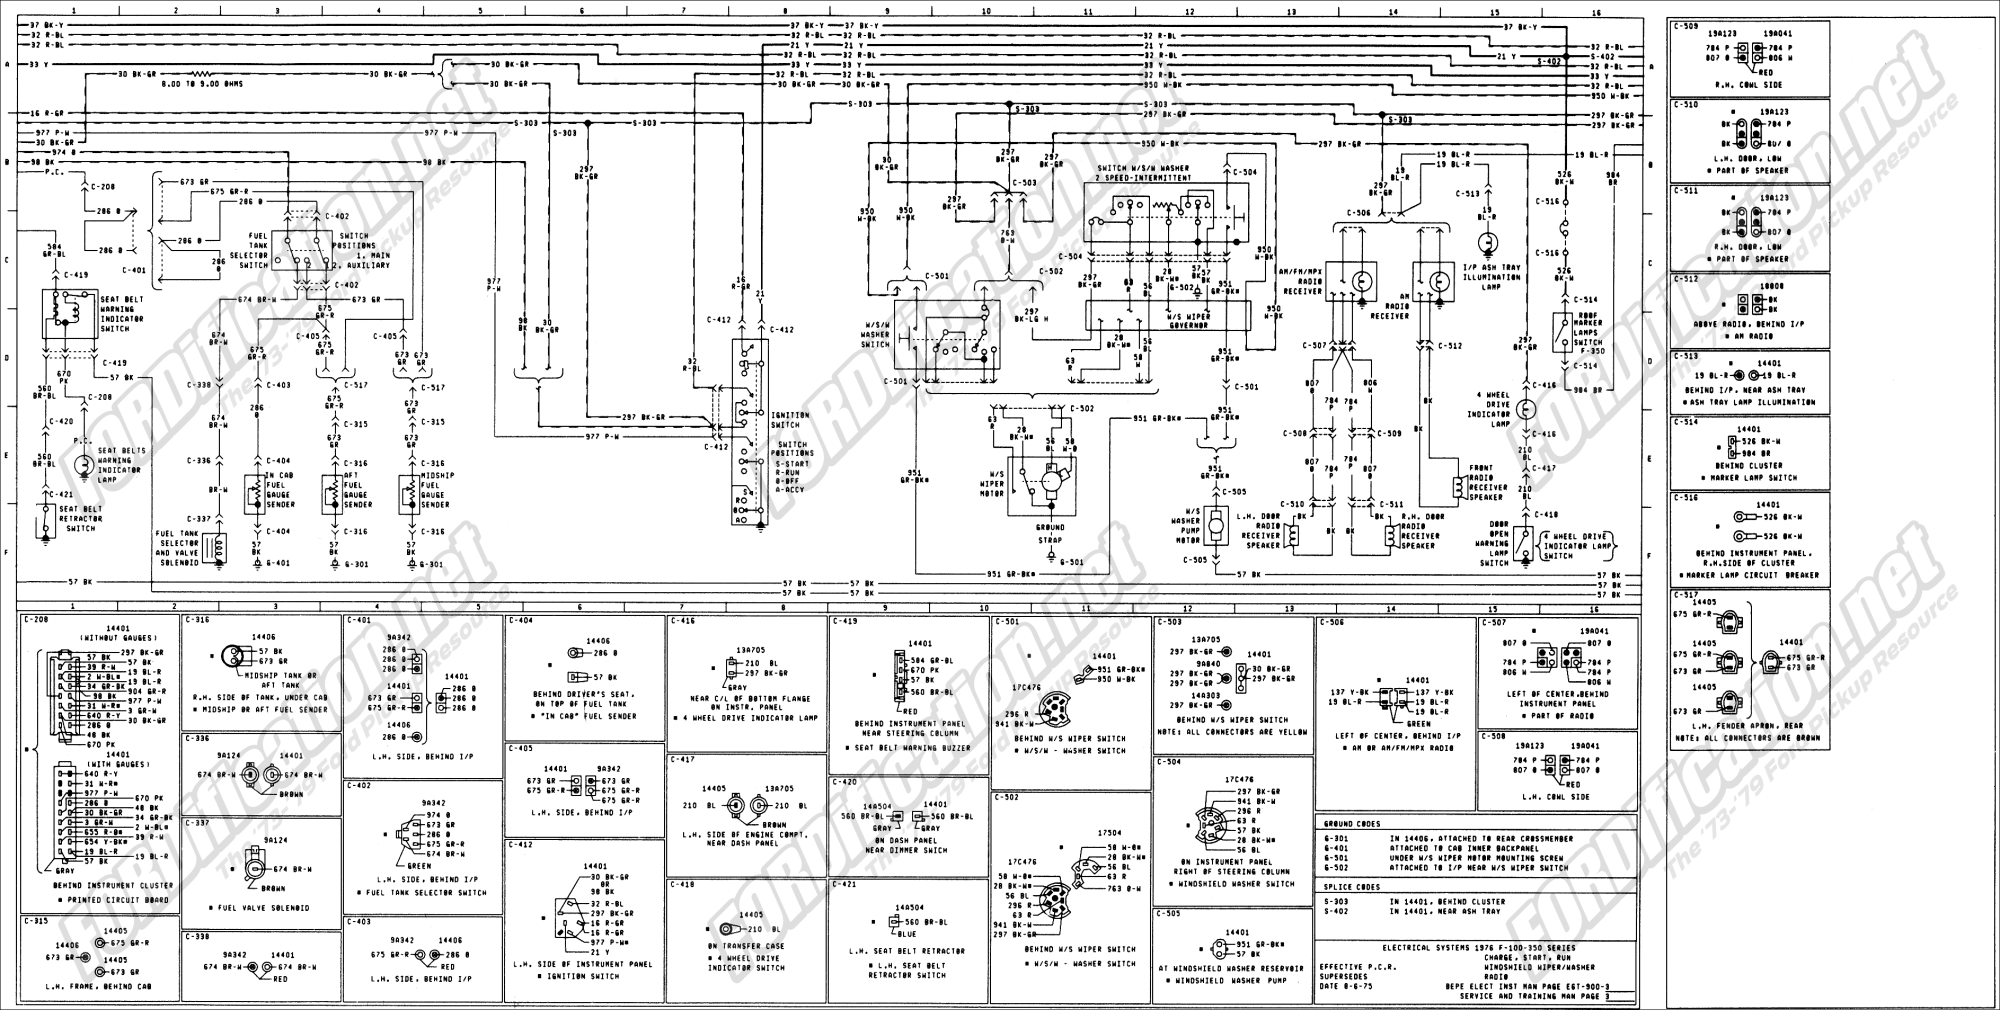 hight resolution of 1996 honda civic fuse box diagram besides sensor heater circuit bank 1996 honda civic fuse box diagram besides sensor heater circuit bank 1